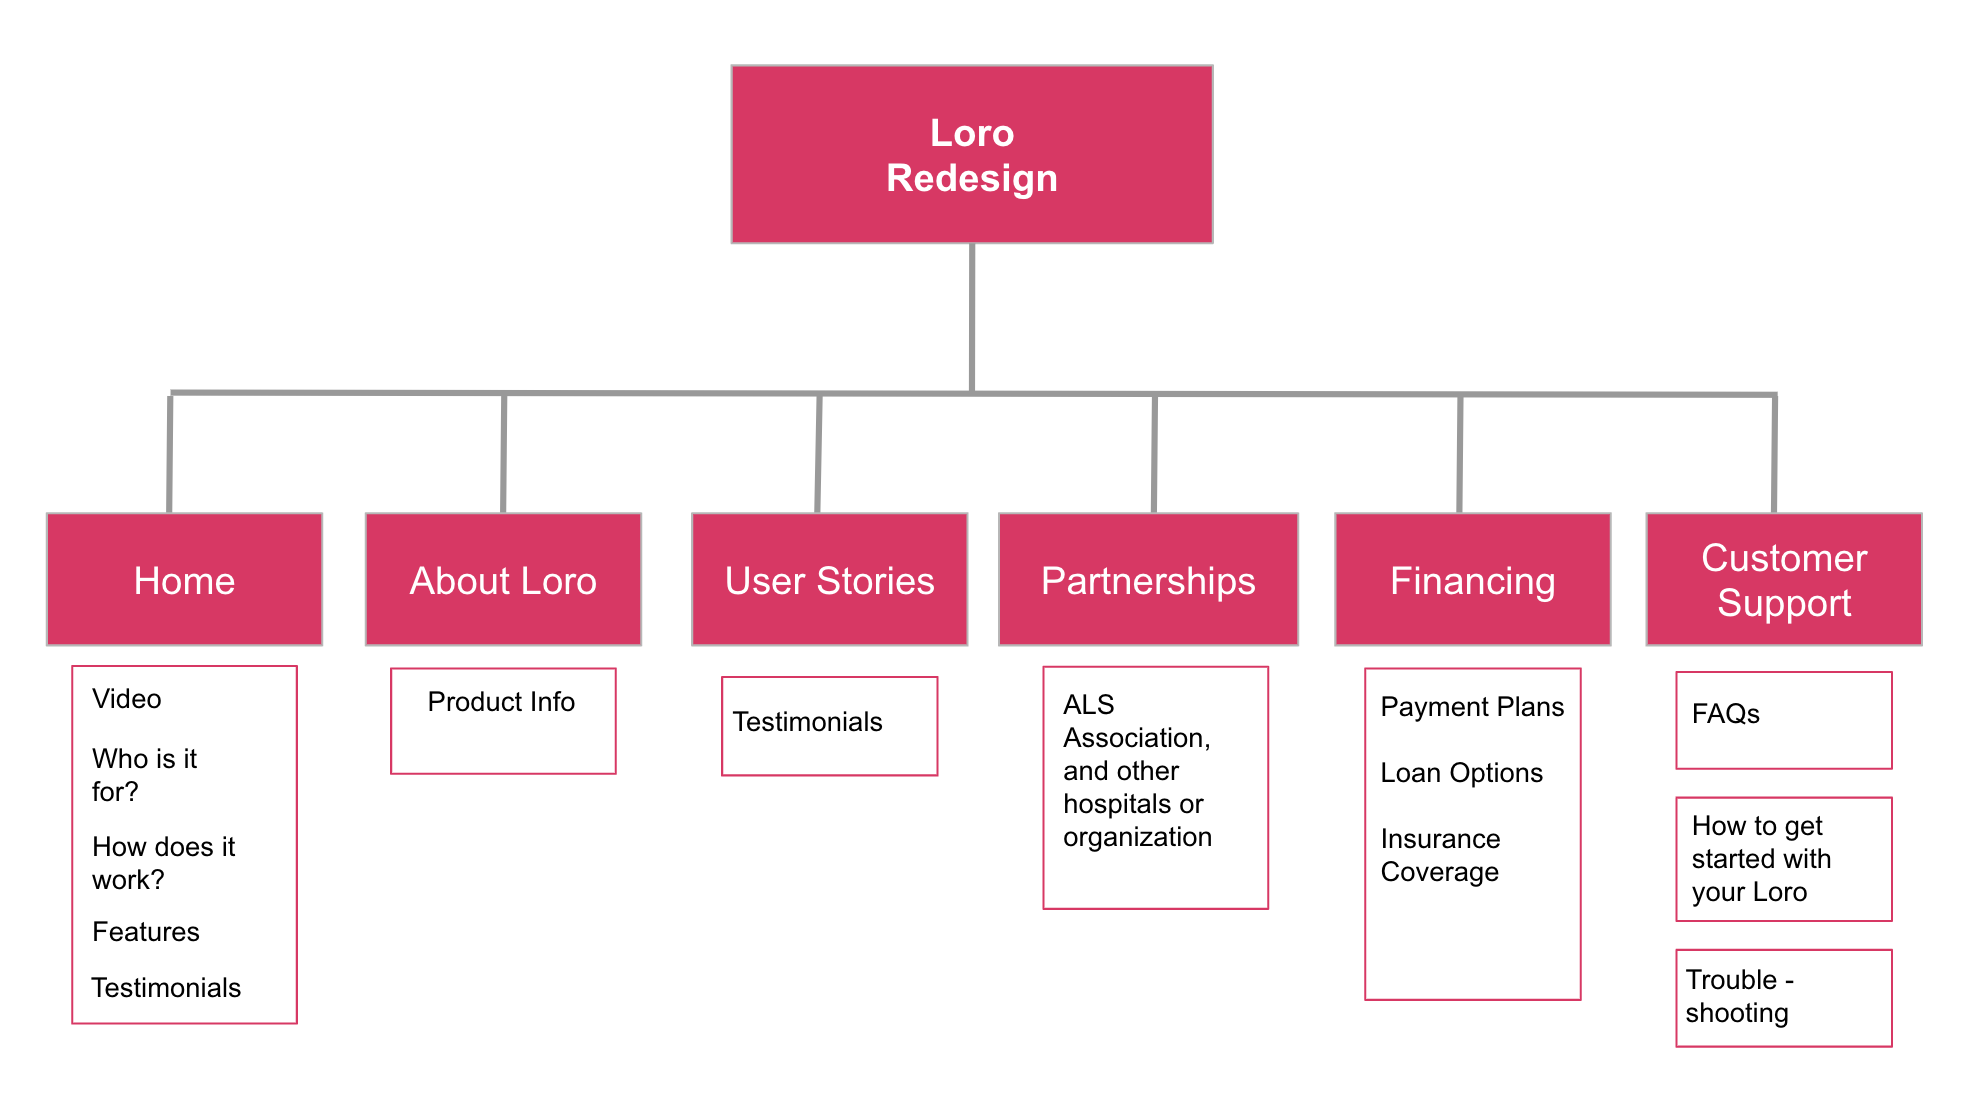 Website - Card sorting revealed that Loro needed much clearer navigation. Users expected to find robust customer support, and comparative analysis revealed that most competitors begin with a video in their hero space. In order to address issues such as insurance and affordability as well as highlight key partnerships, we built that into our navigation.